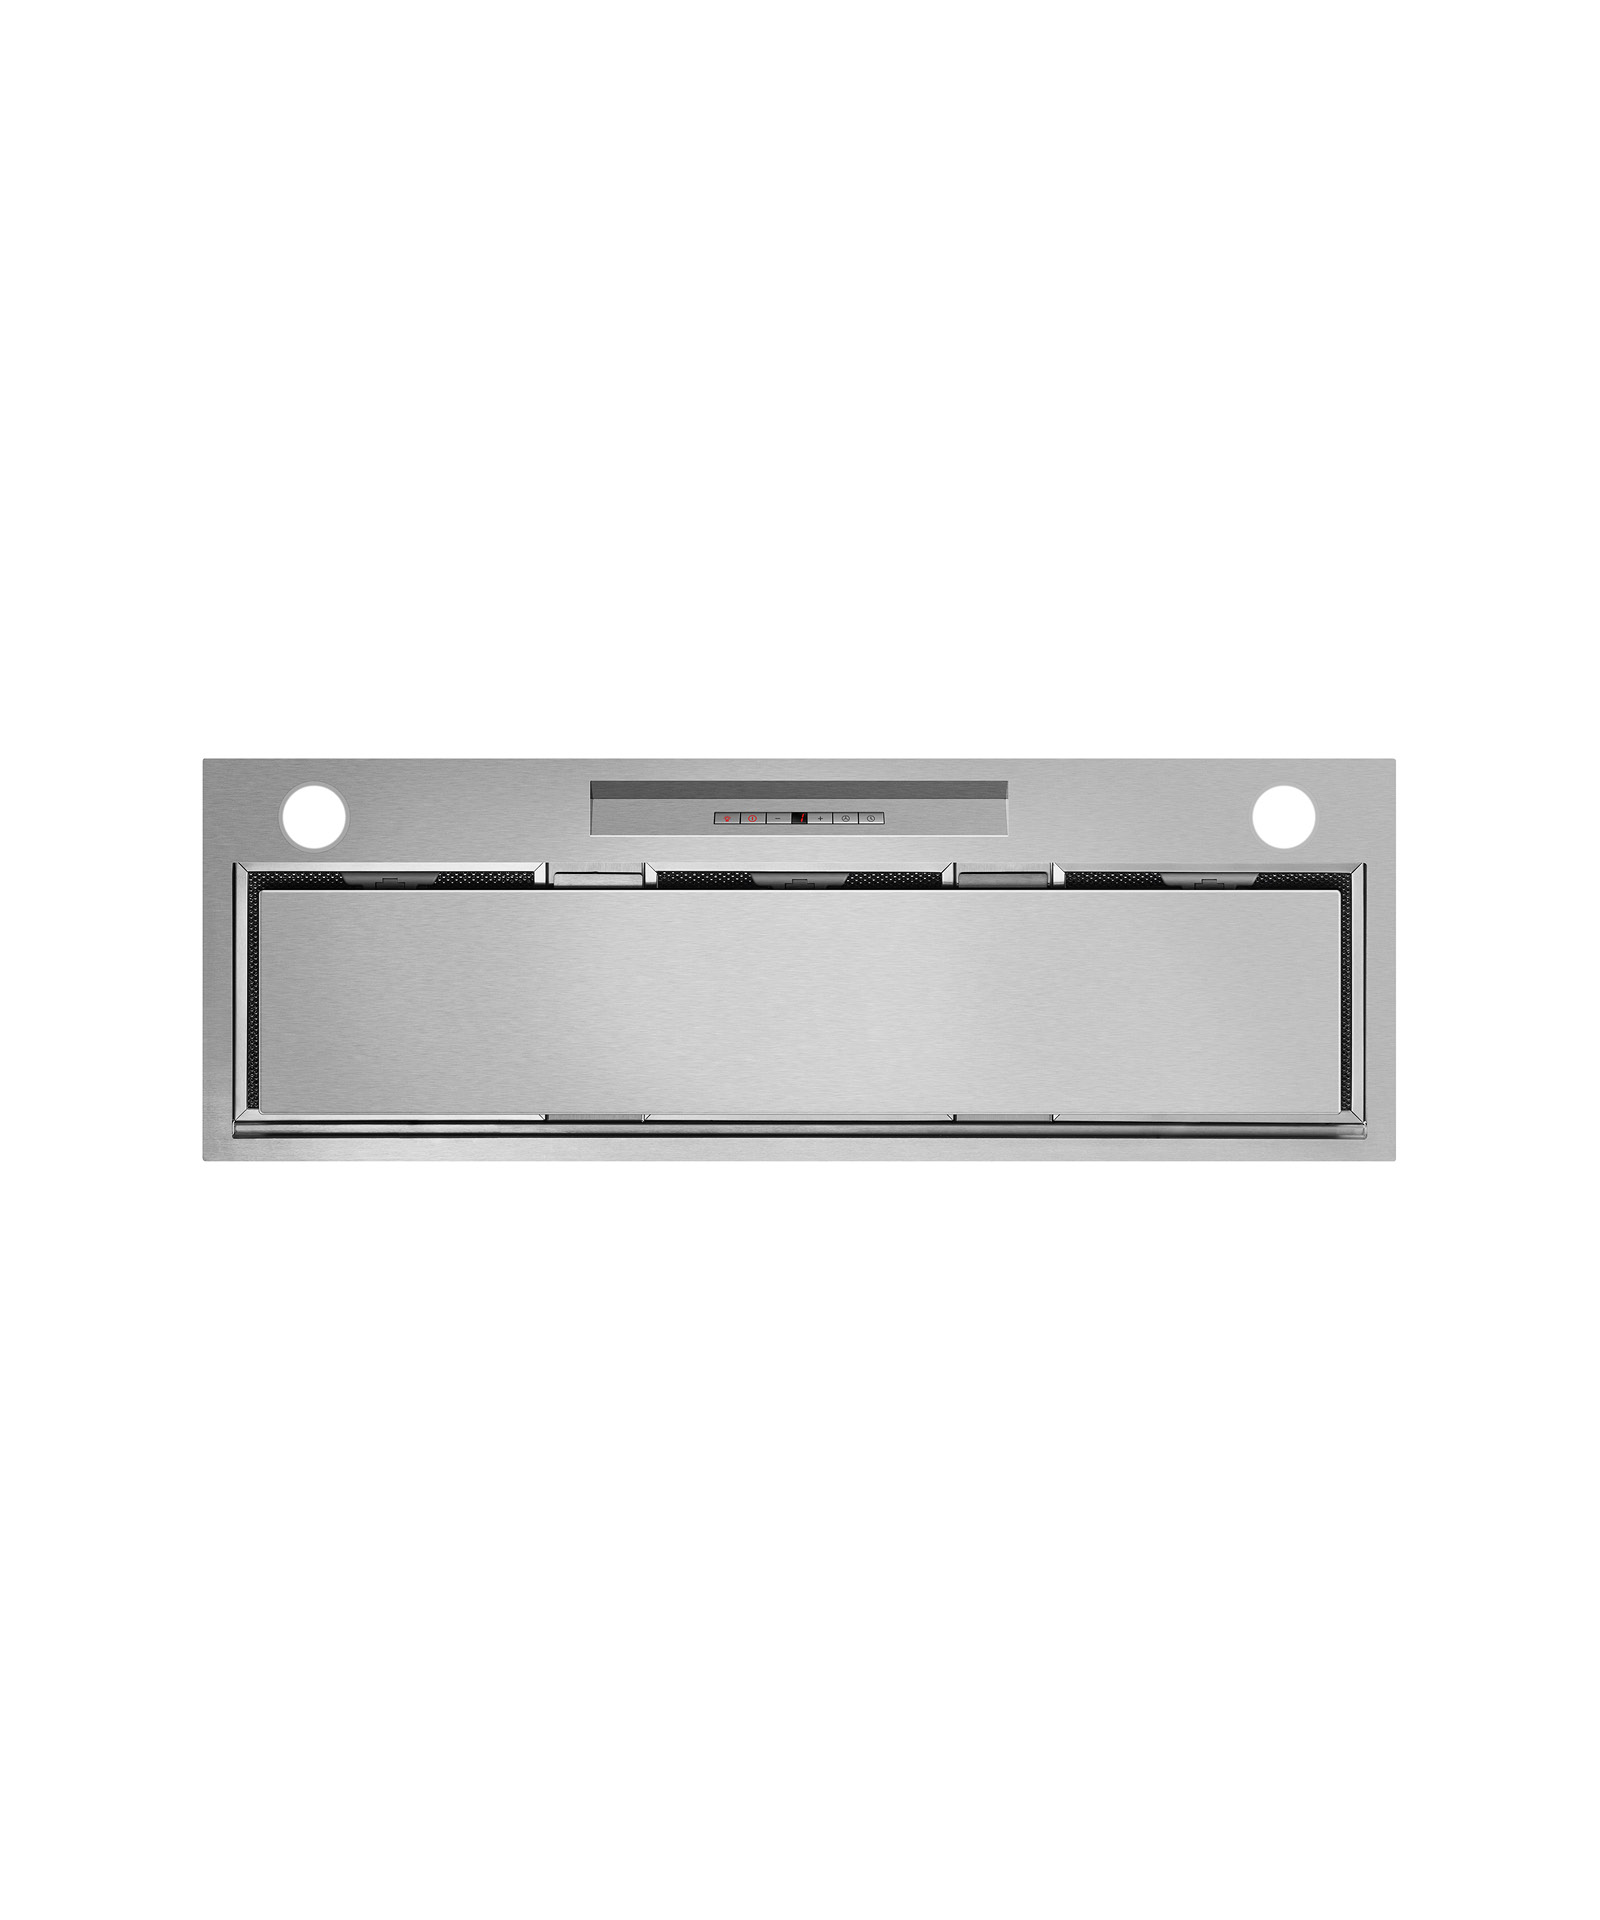 "Fisher and Paykel 36"" Ventilation Hood- Perimeter Insert"